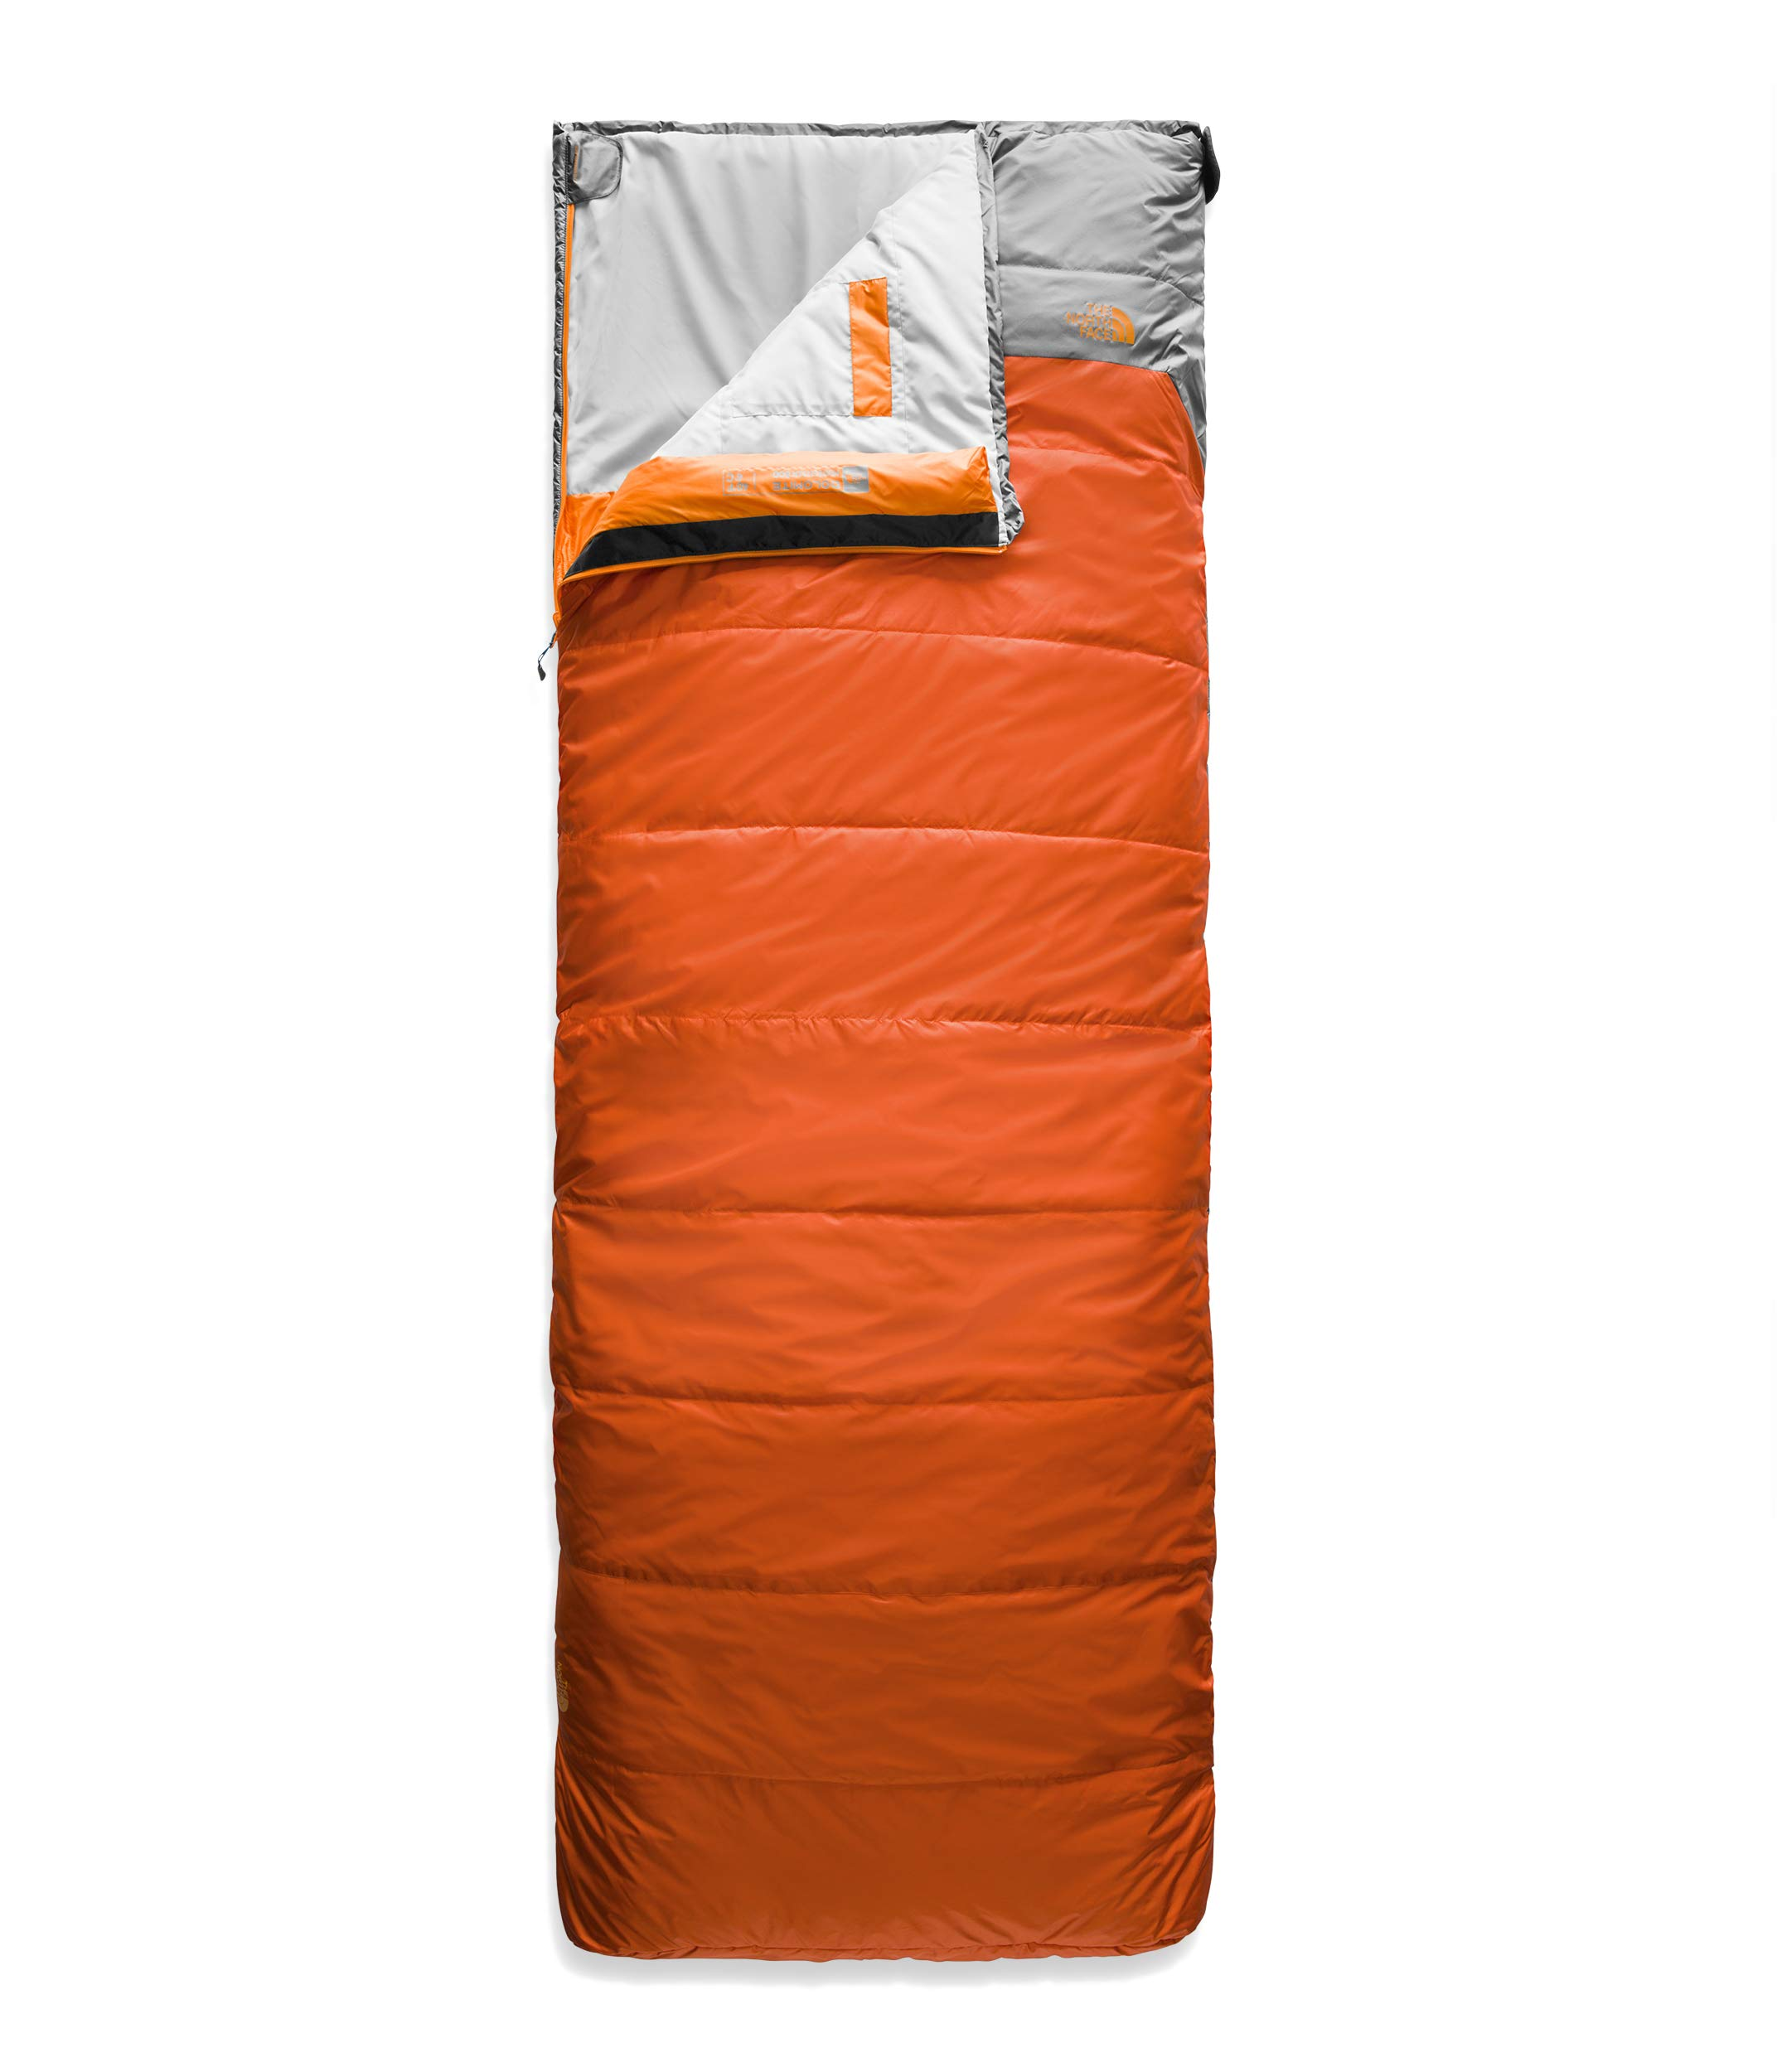 The North Face Dolomite 40F/4C, Monarch Orange/Zinc Grey, Large by The North Face